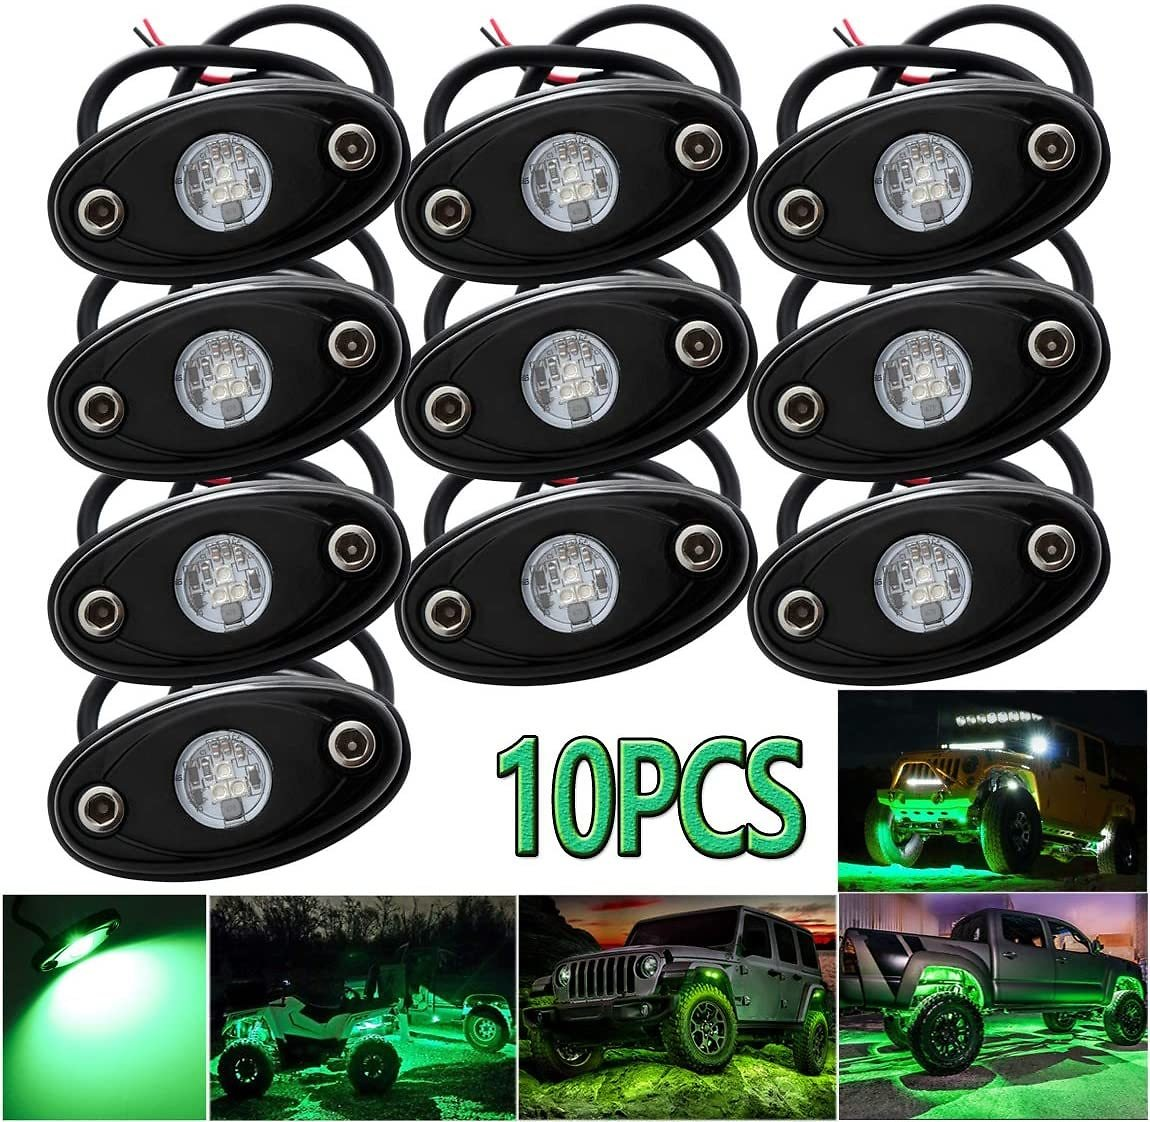 LEDMIRCY LED Rock Lights Blue Kit for JEEP Off Road Truck ATV SUV Boat Car Auto High Power Underbody Glow Neon Trail Rig Lights